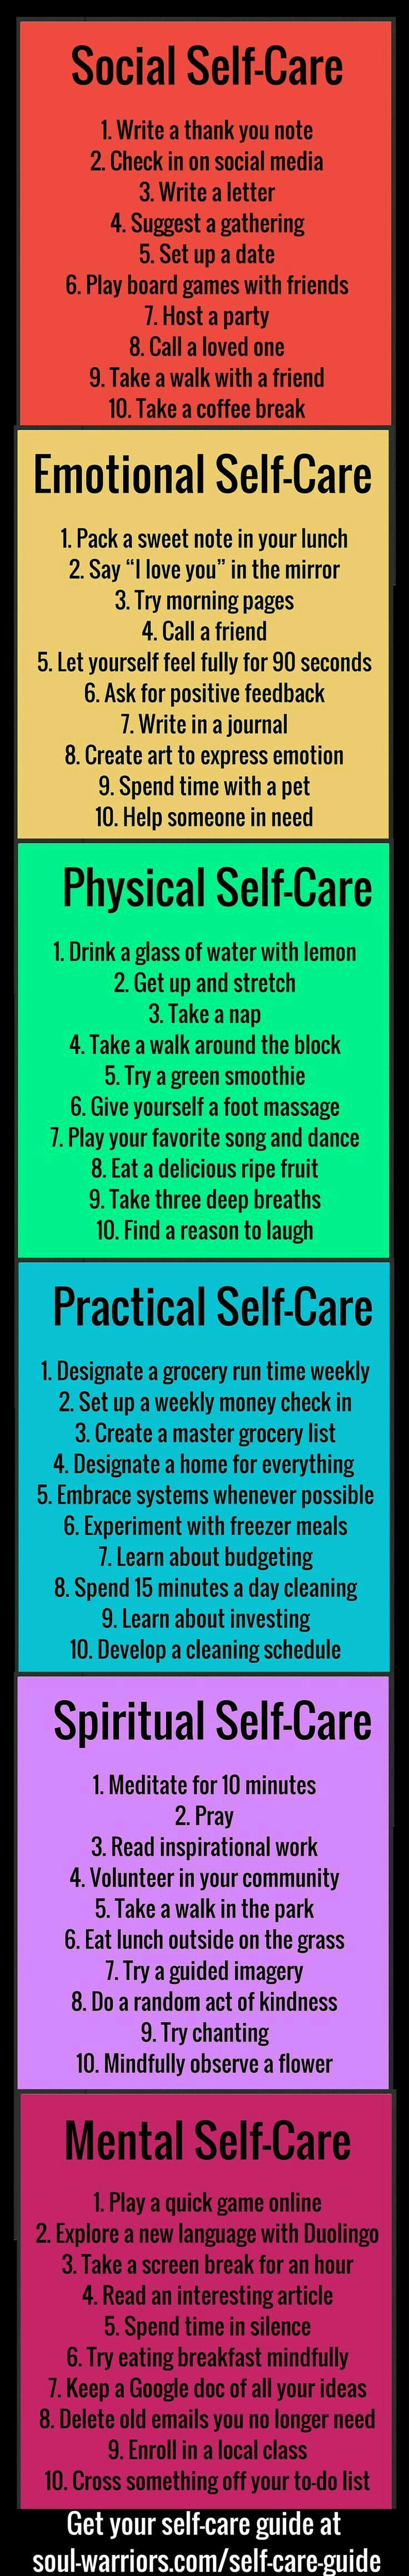 This is the most accurate & real self care list I've seen so far. Requires little to no money and is based on actual psychiatric recovery practices  #OneWomanCanCanada @marykaycanada